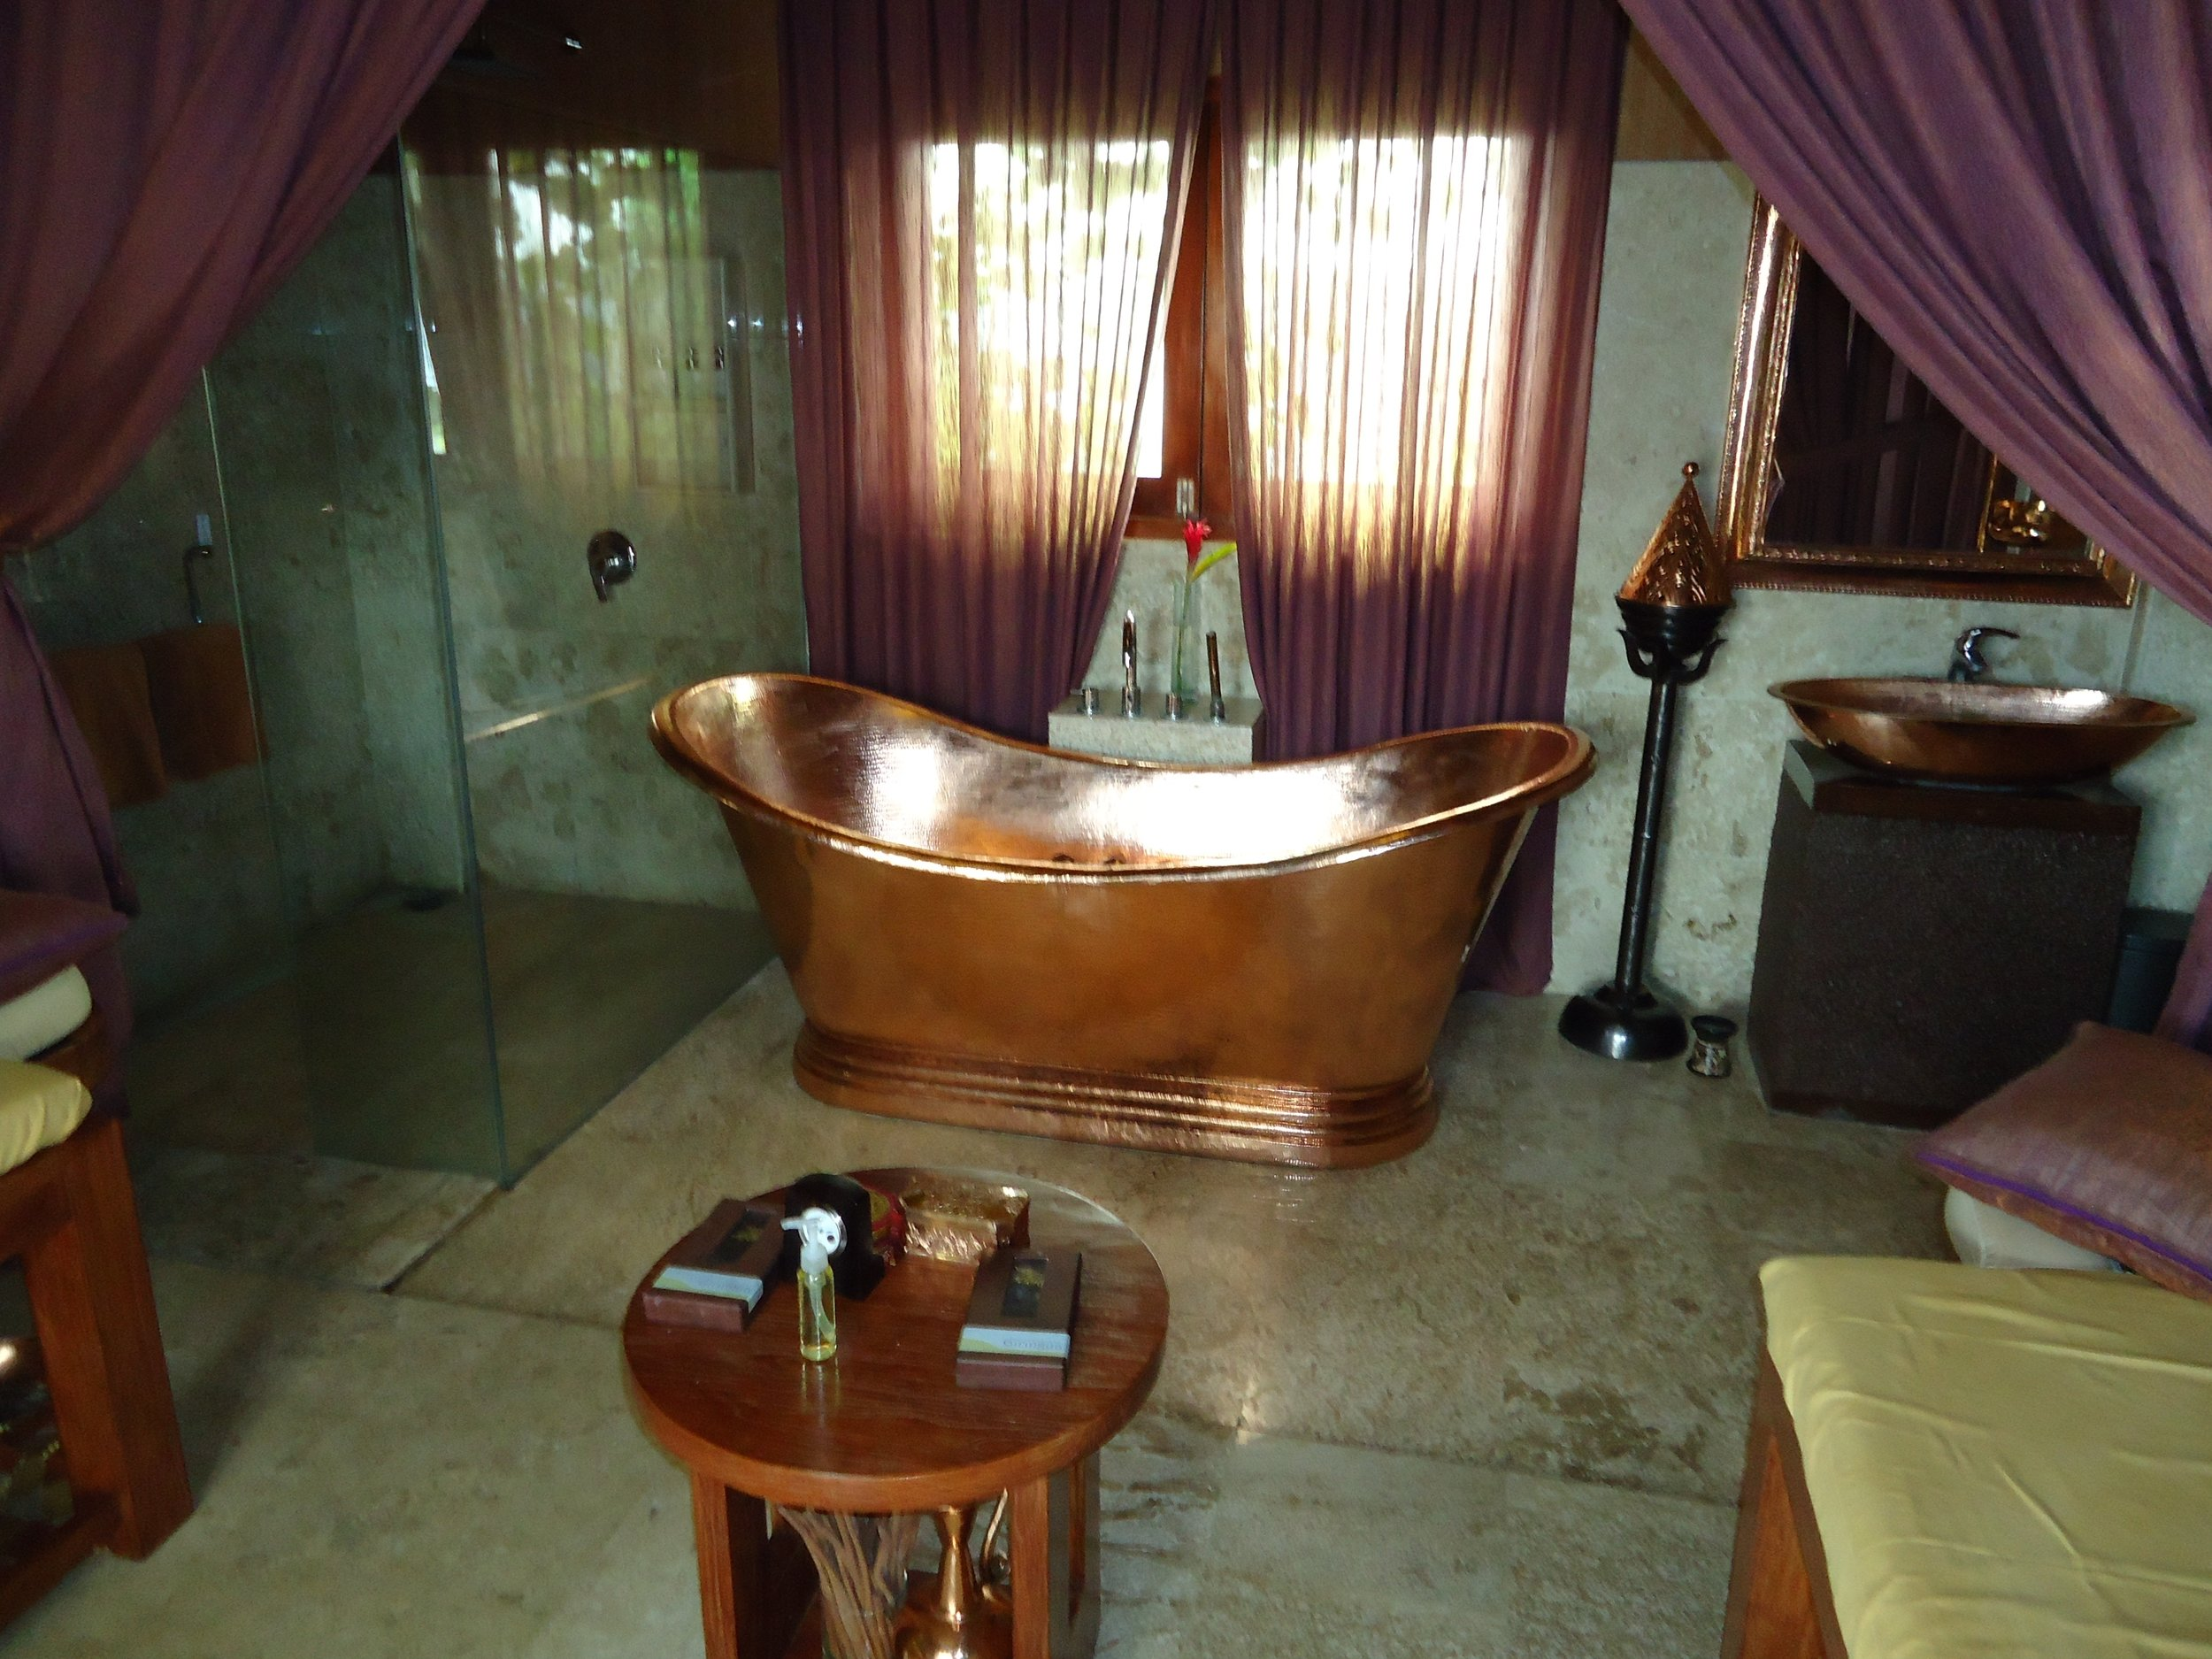 cOPPER BATH RESORT WEBSITE.JPG